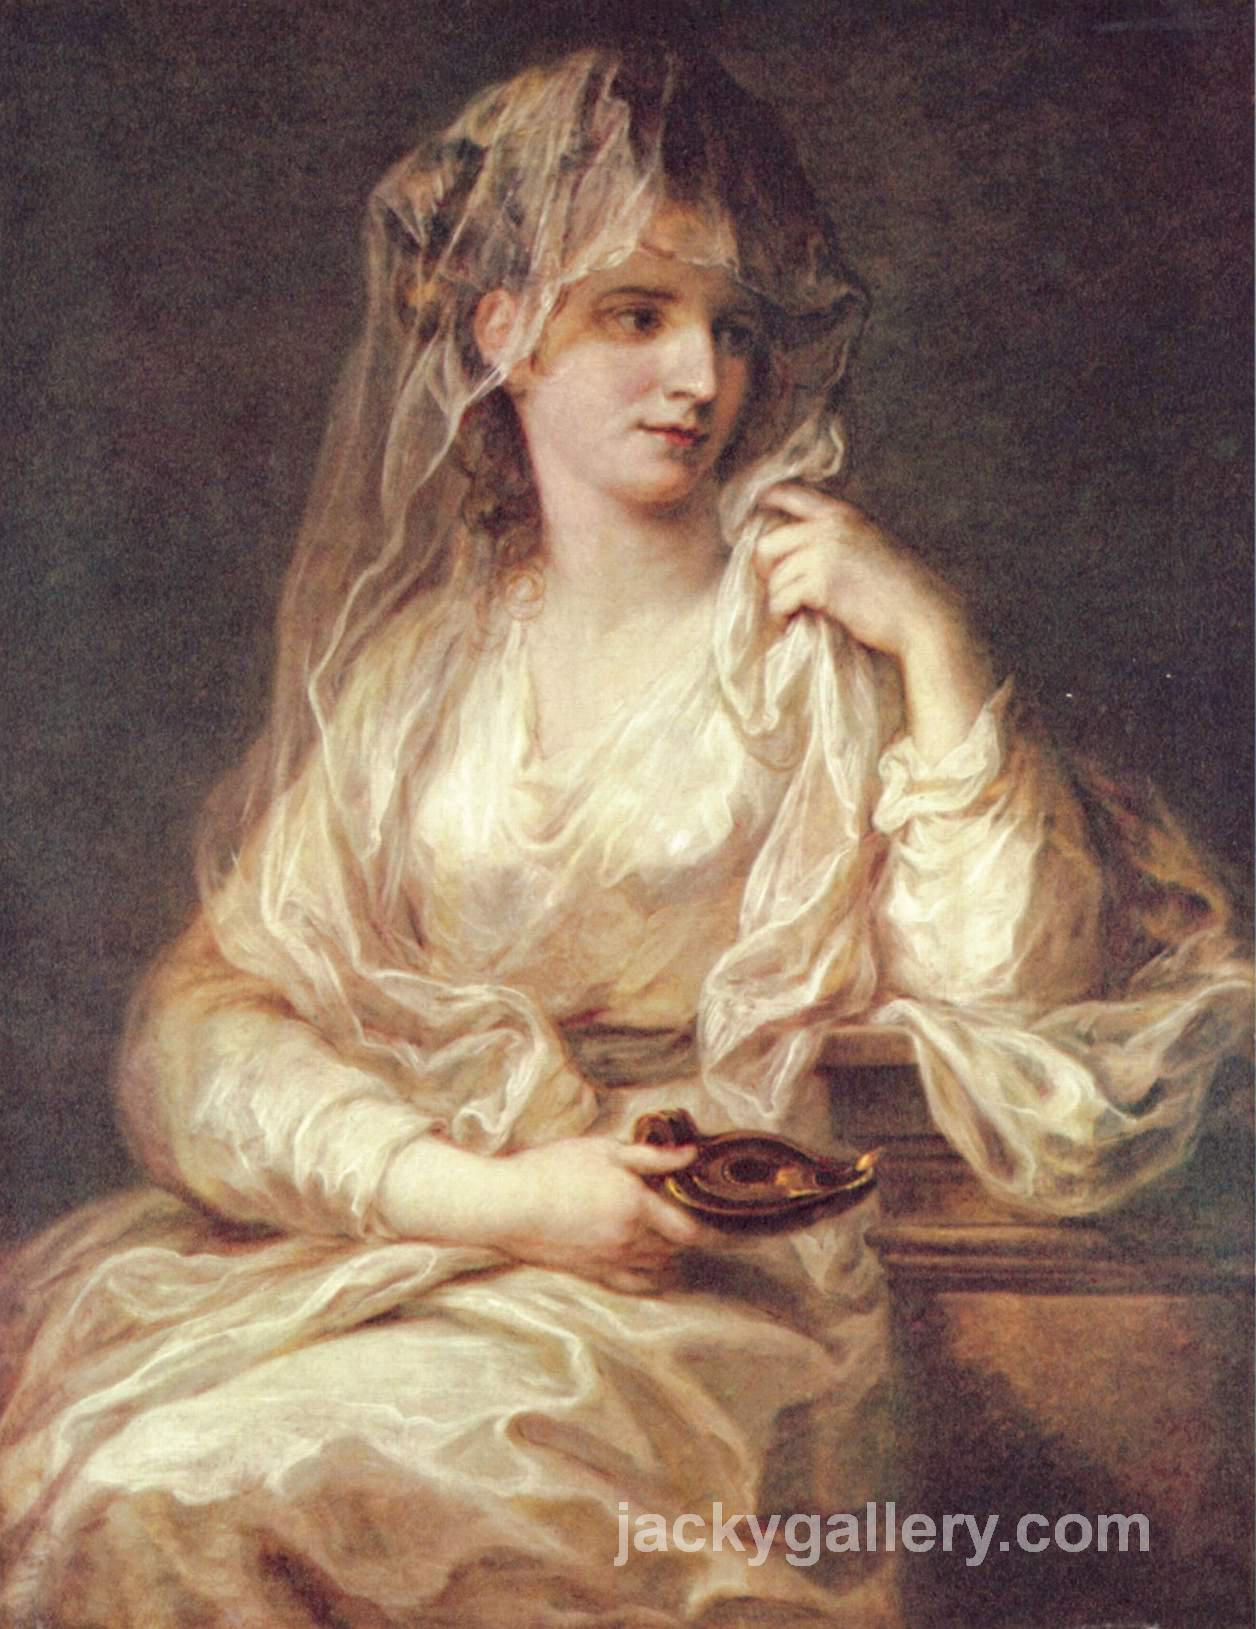 Portrait of a Woman as a Vestal Virgin, Angelica Kauffman painting